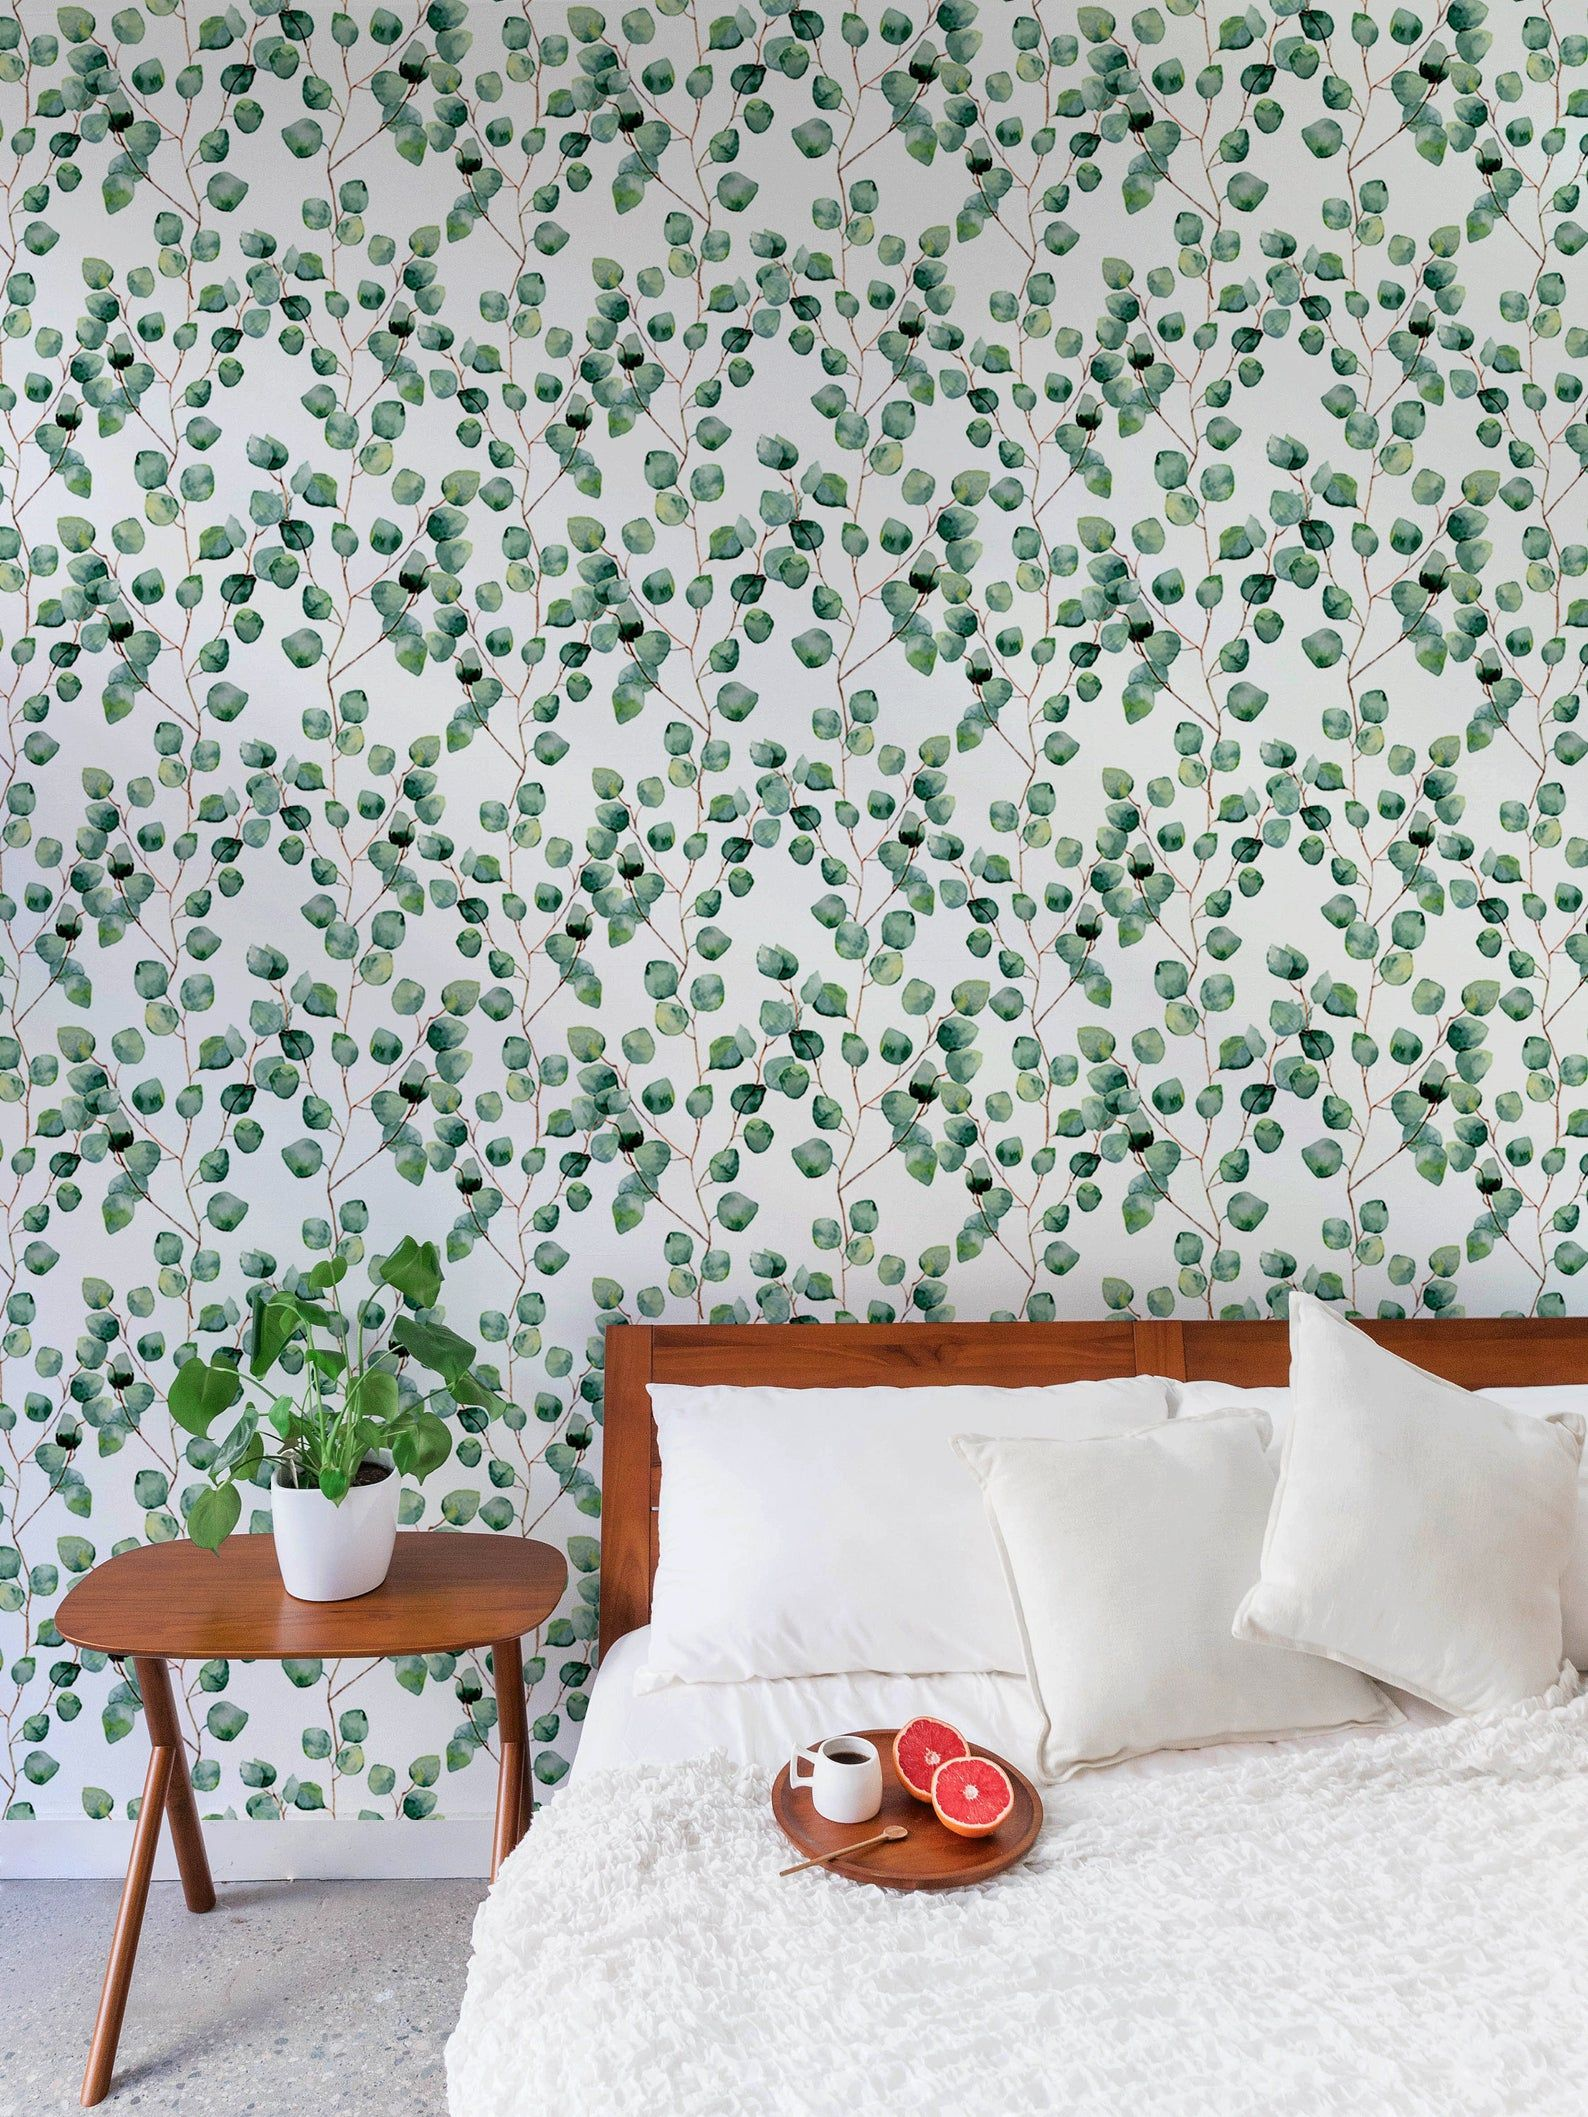 Removable Wallpaper Peel And Stick Wallpaper Wall Paper Wall Etsy In 2020 Temporary Wallpaper Best Removable Wallpaper Removable Wallpaper